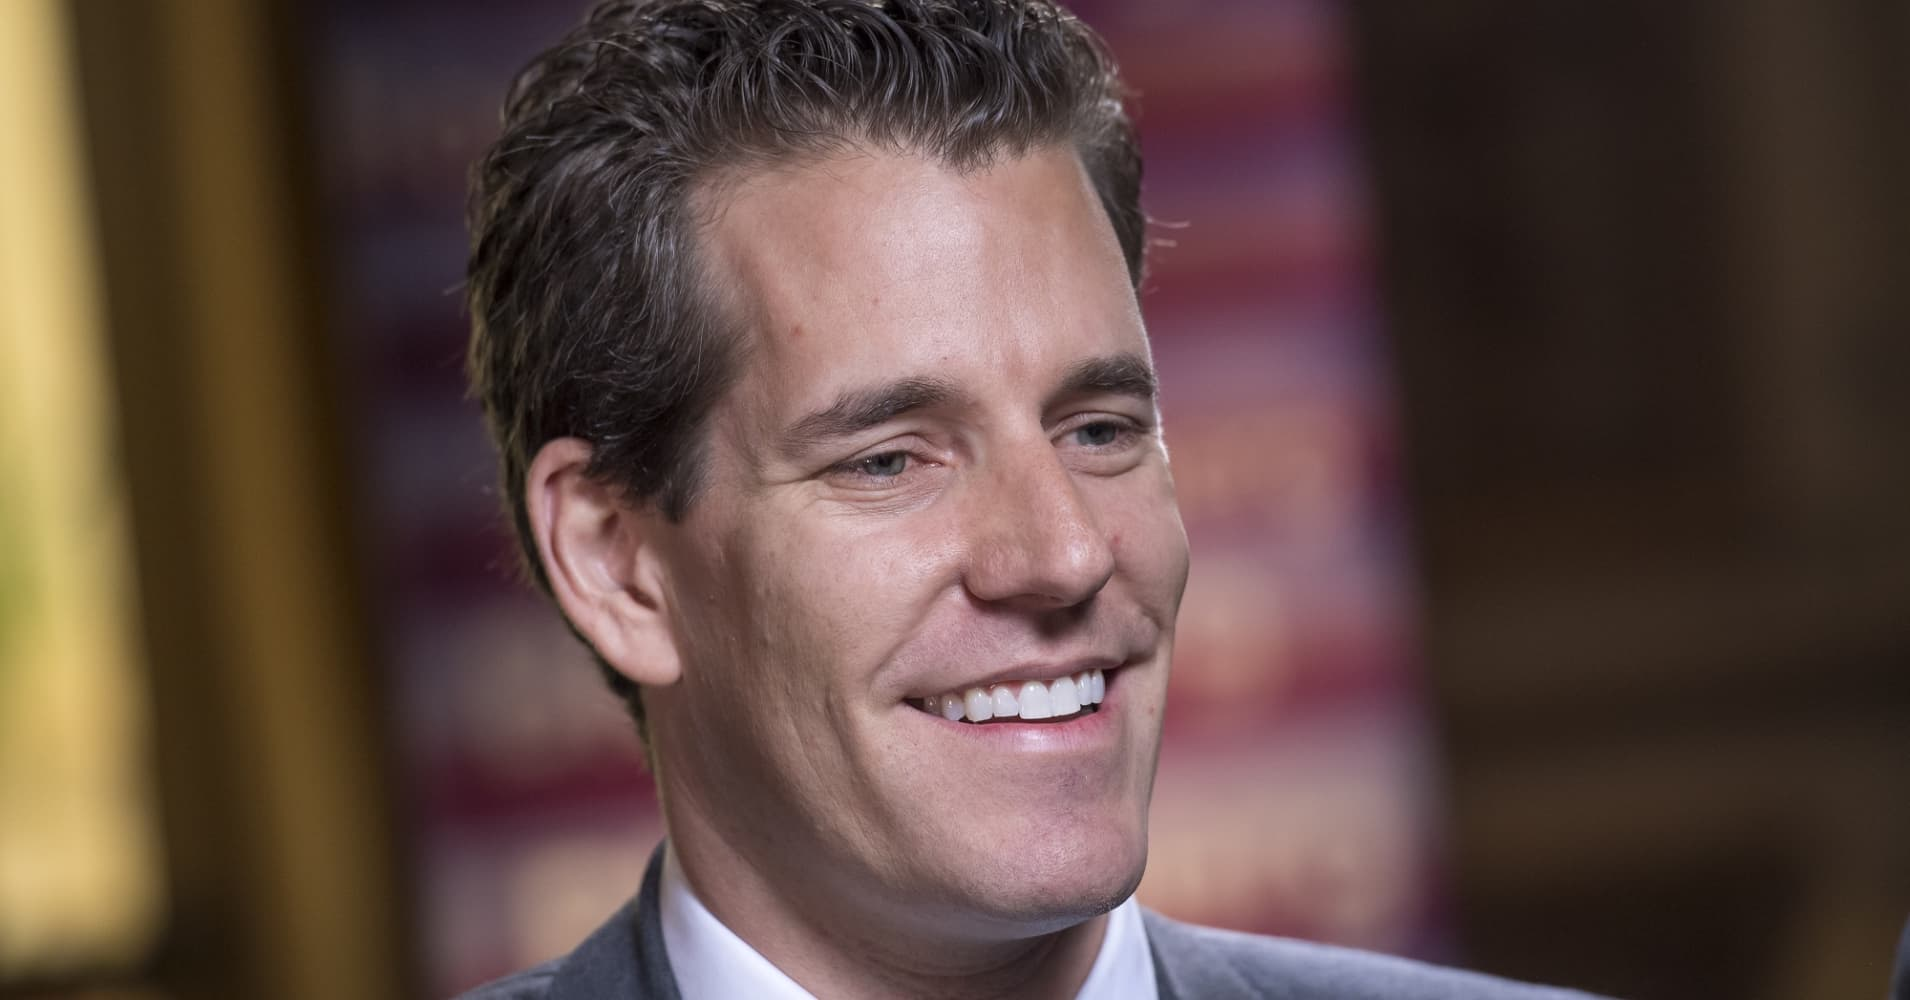 Bitcoin backer Cameron Winklevoss shares his 2 favorite science fiction books